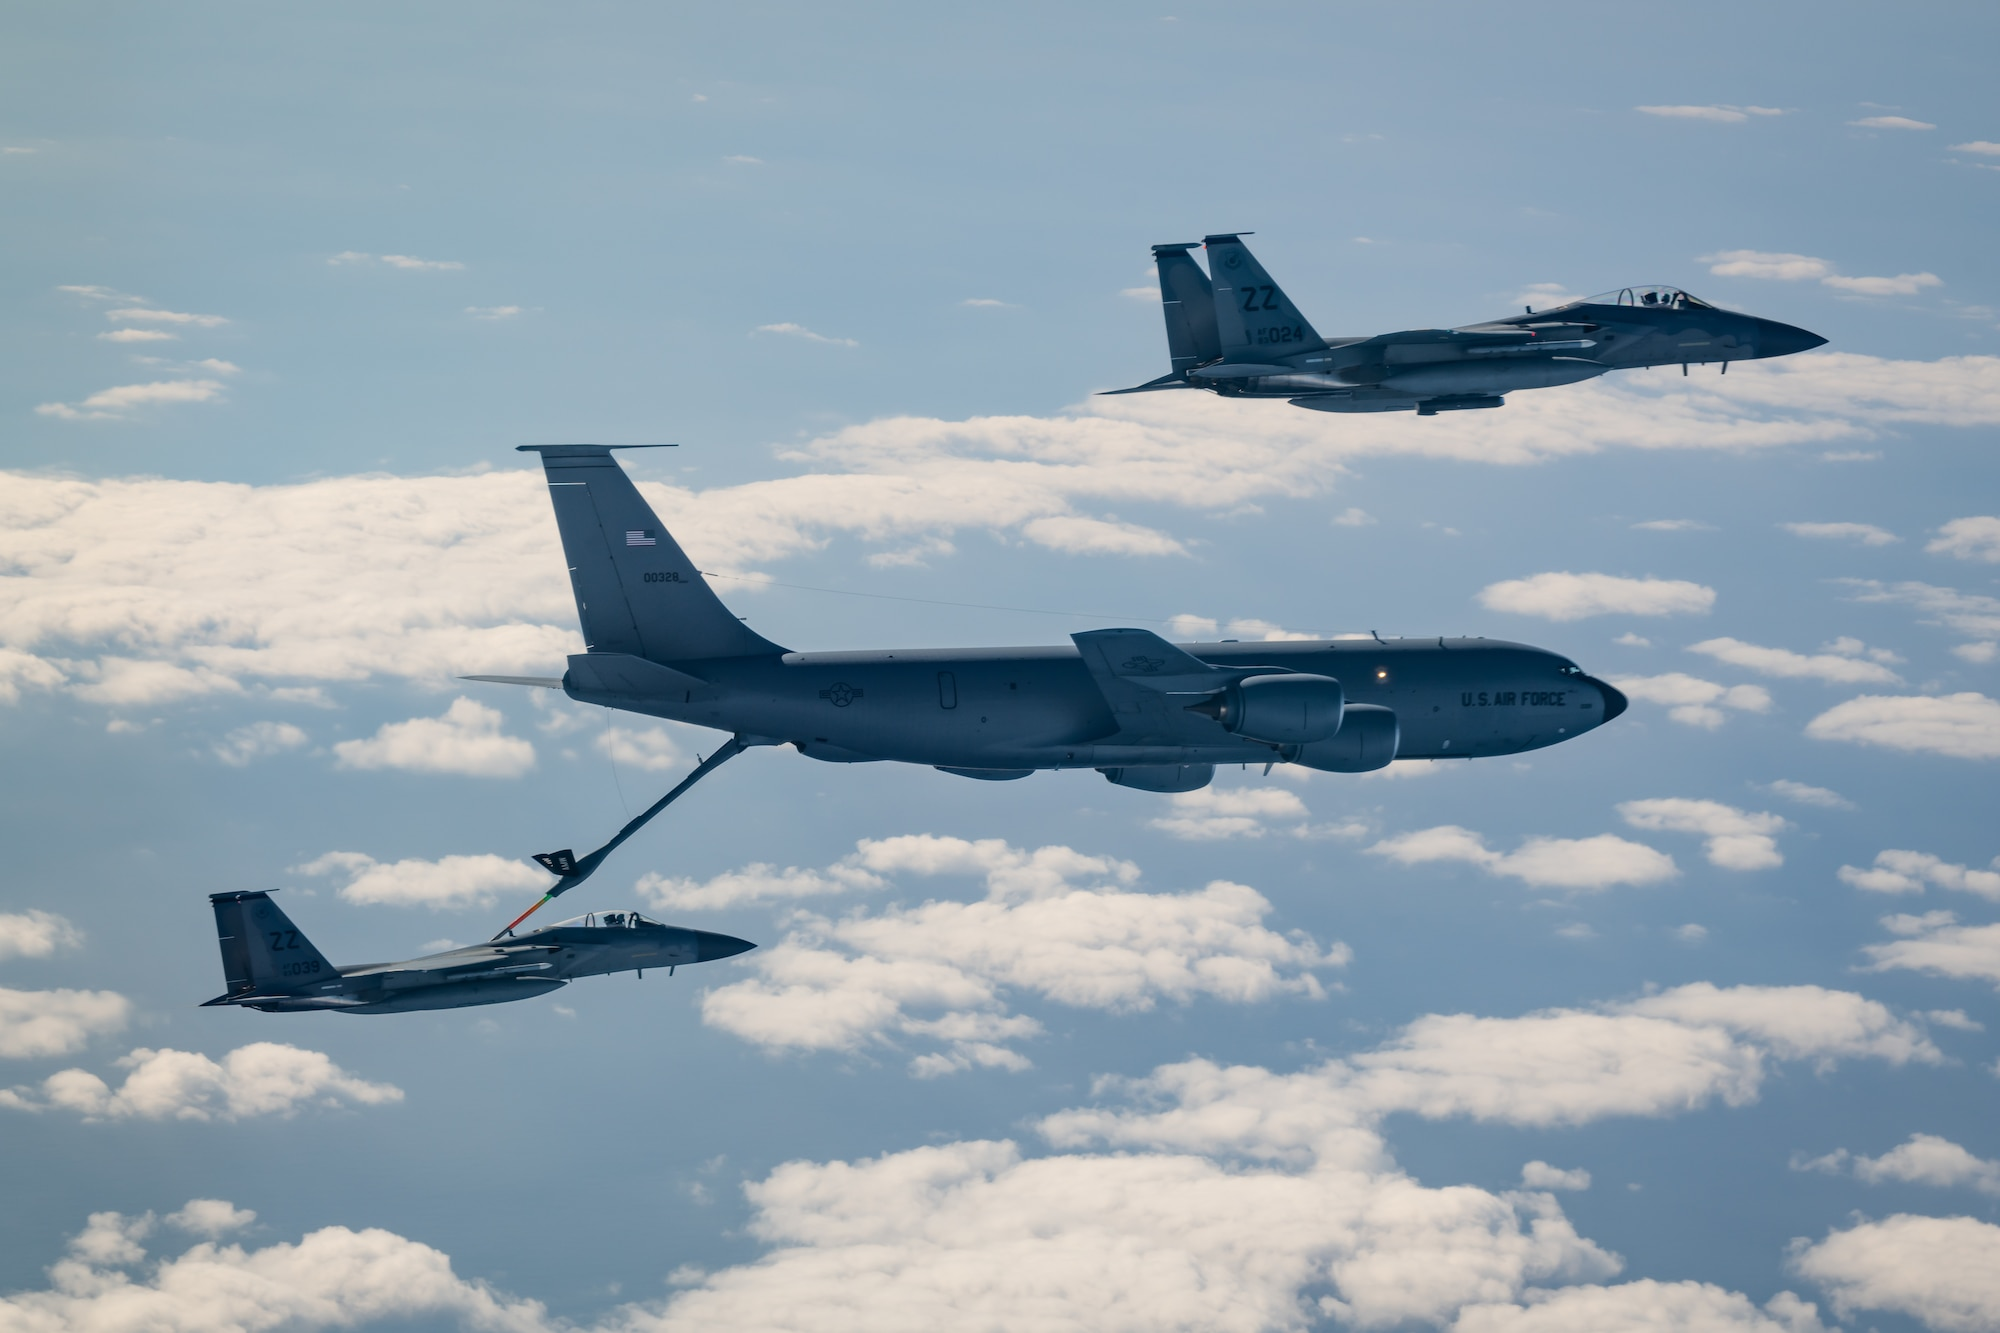 Two F-15C Eagles from the 44th Fighter Squadron refuel with a KC-135 Stratotanker from the 909th Air Refueling Squadron Jan. 10, 2020, during Exercise WestPac Rumrunner out of Kadena Air Base, Japan. Rumrunner represents an evolution in the capabilities of 18th Wing assets to work with joint partners to defend American allies and ensures a free and open Indo-Pacific. (U.S. Air Force photo by Senior Airman Matthew Seefeldt)